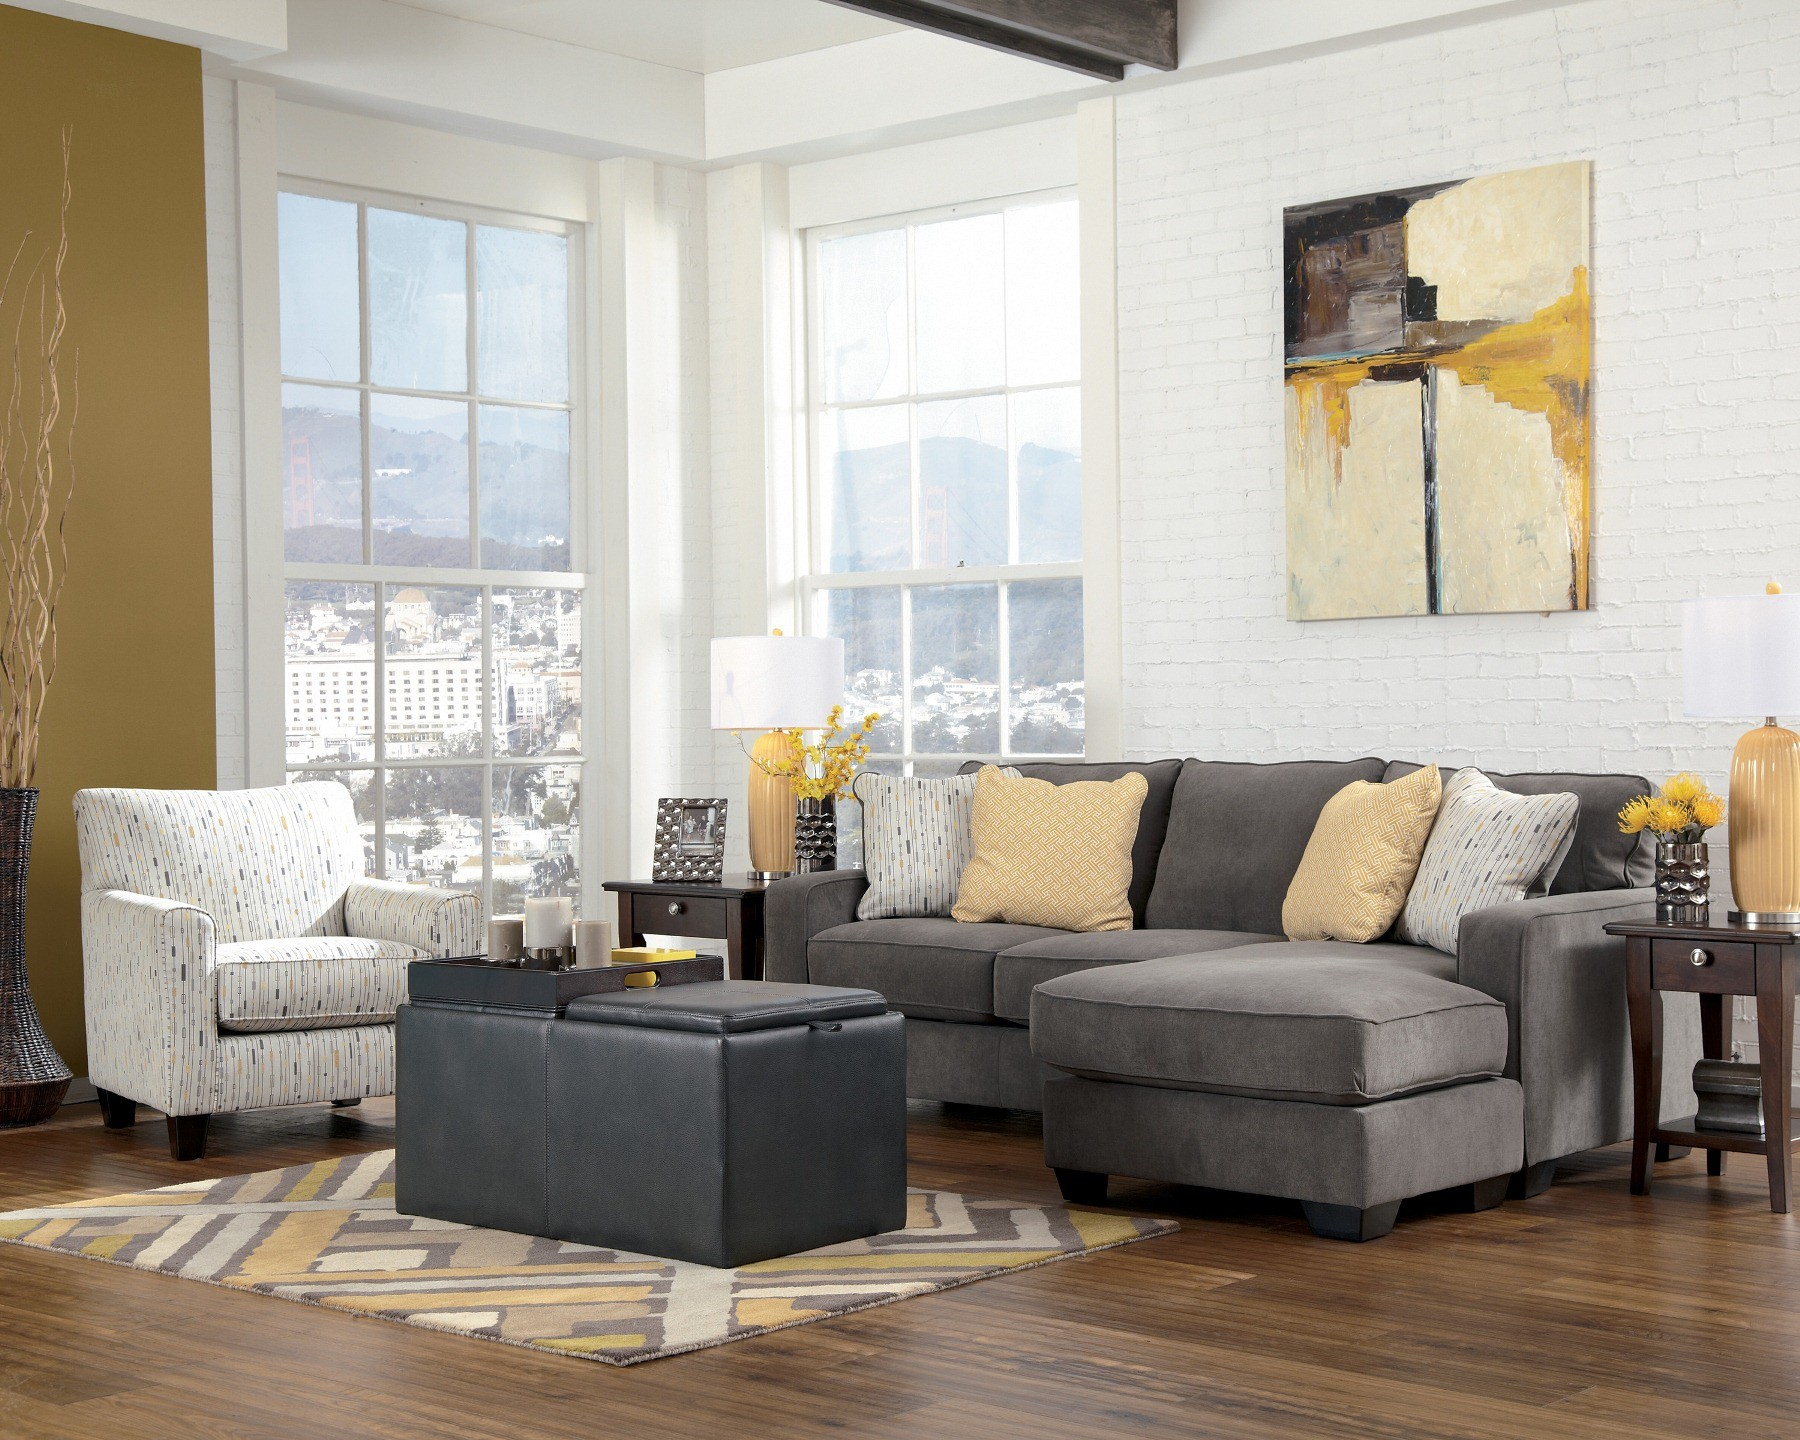 Hodan Marble Living Room Set from Ashley (79700)   Coleman Furniture